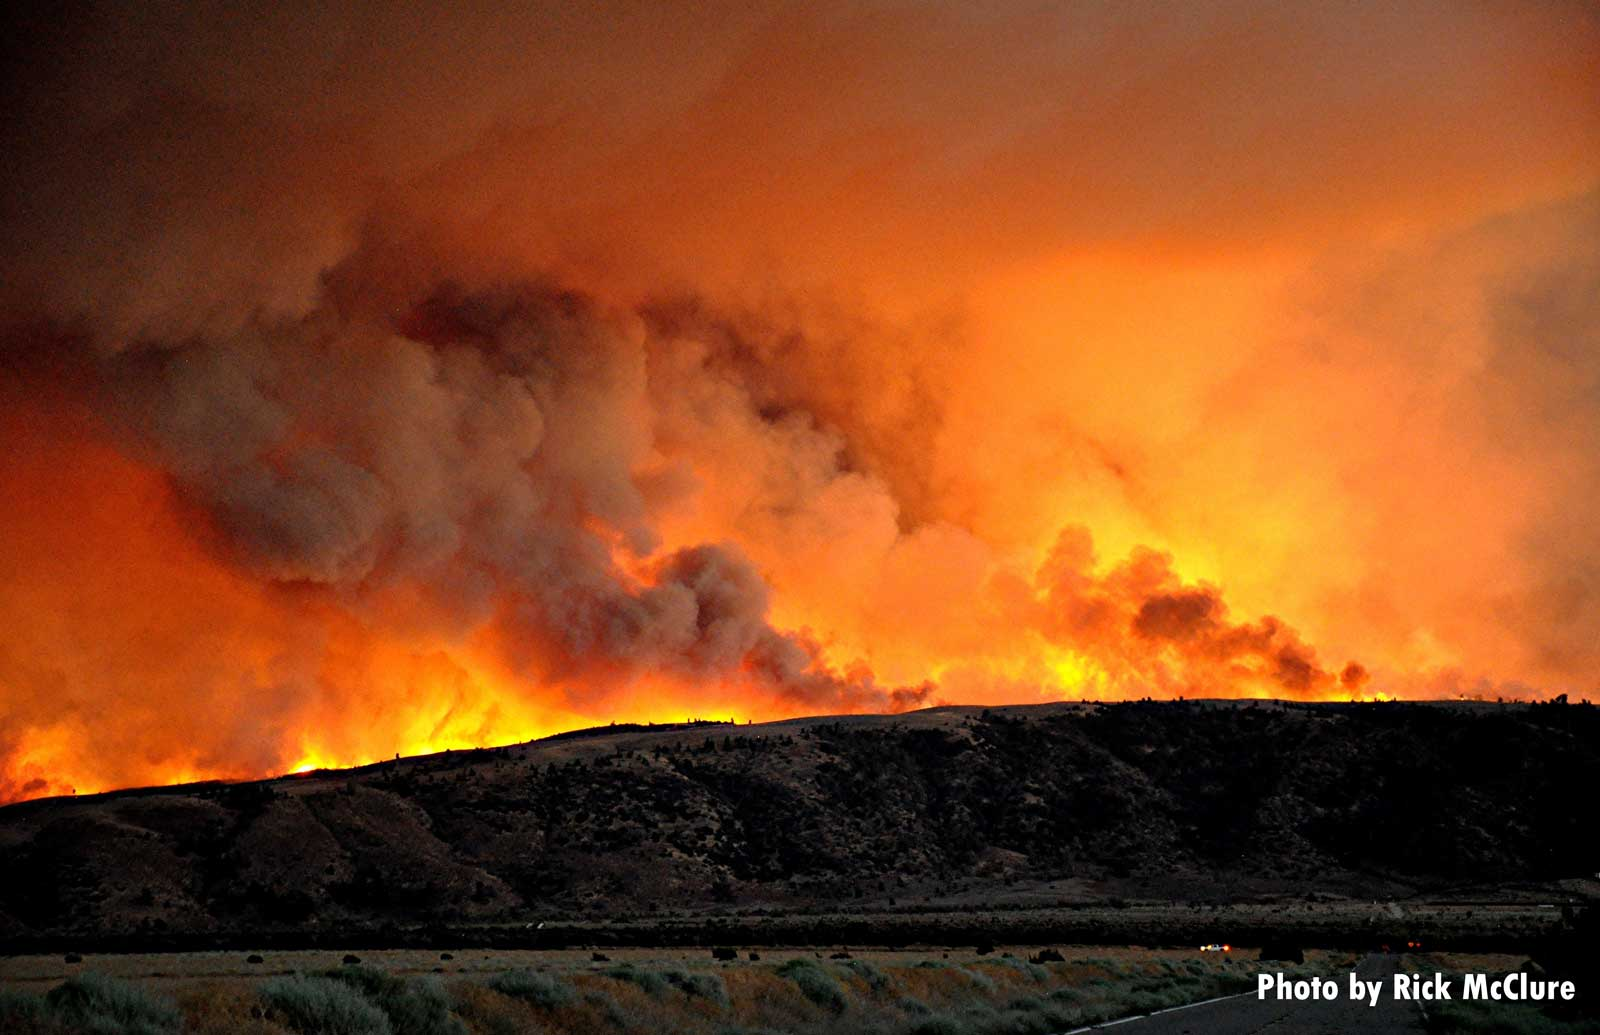 Scorched landscape with flames